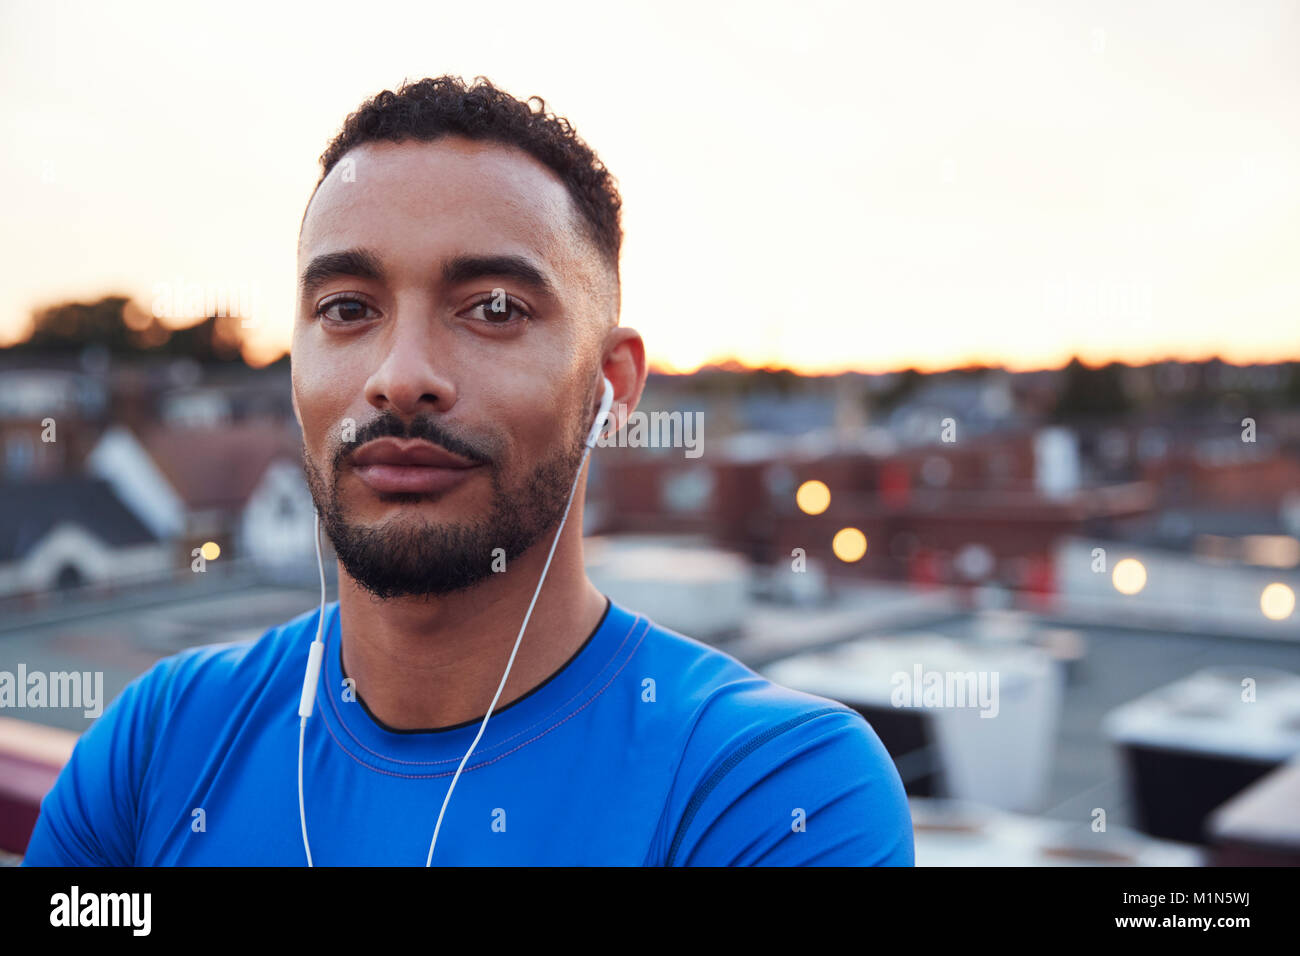 Male runner in urban setting looking to camera, close up - Stock Image